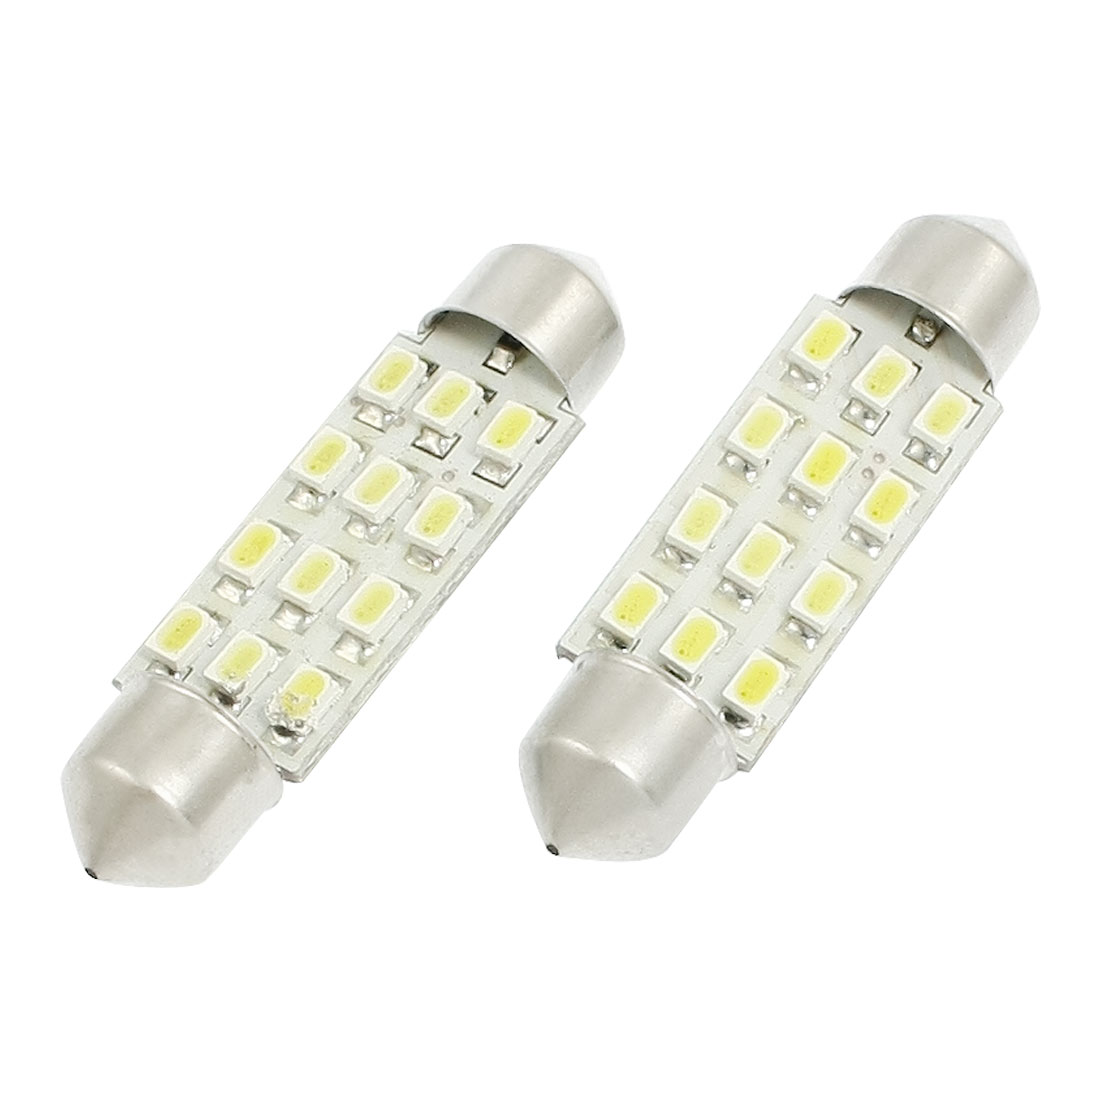 2 Pcs LED 41mm 3020 1206 SMD 12 LED Light Dome Light White